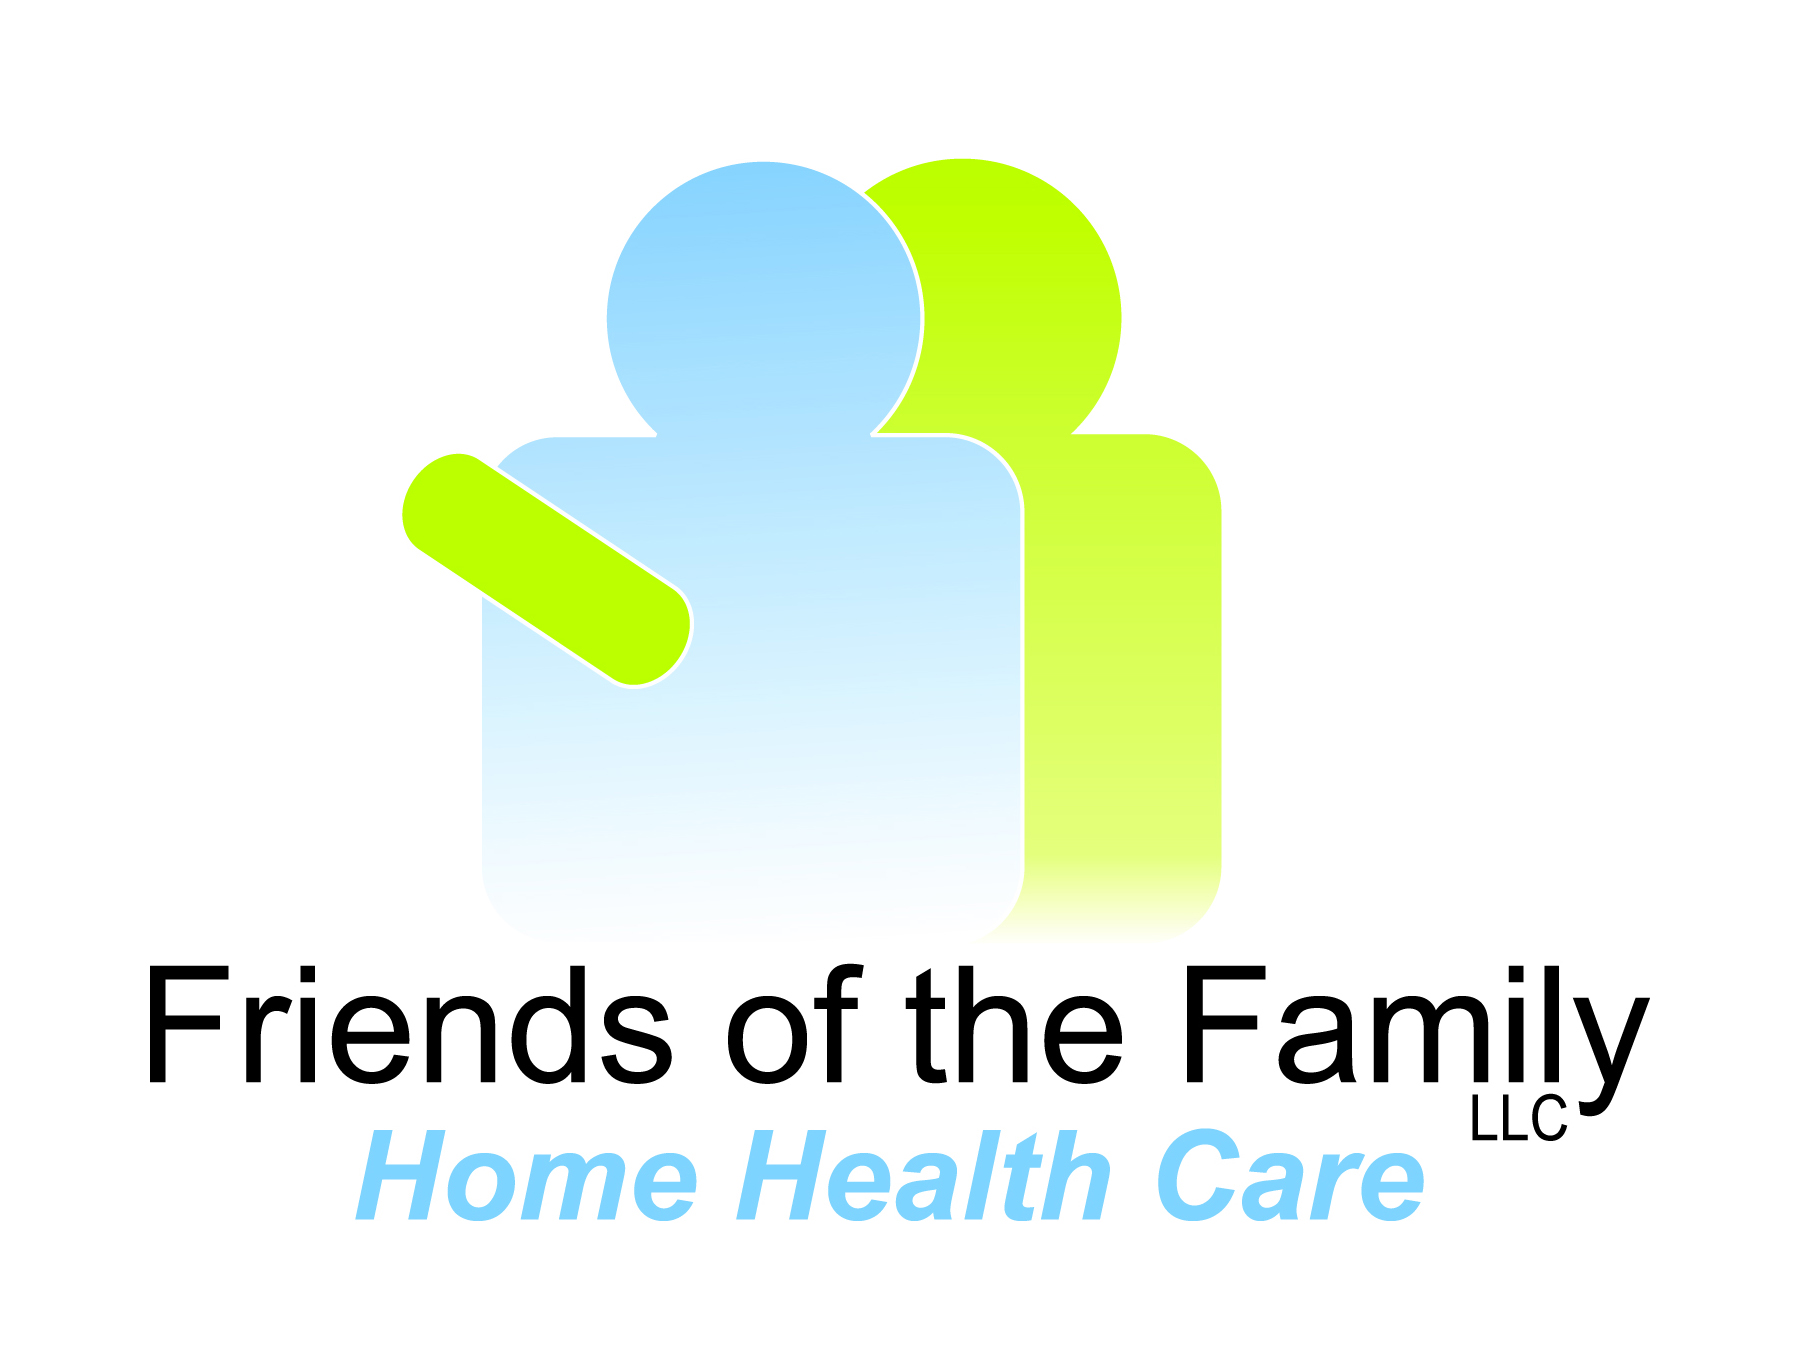 Home Care Service Home Health Care In Home Care Services Friends Of The Family